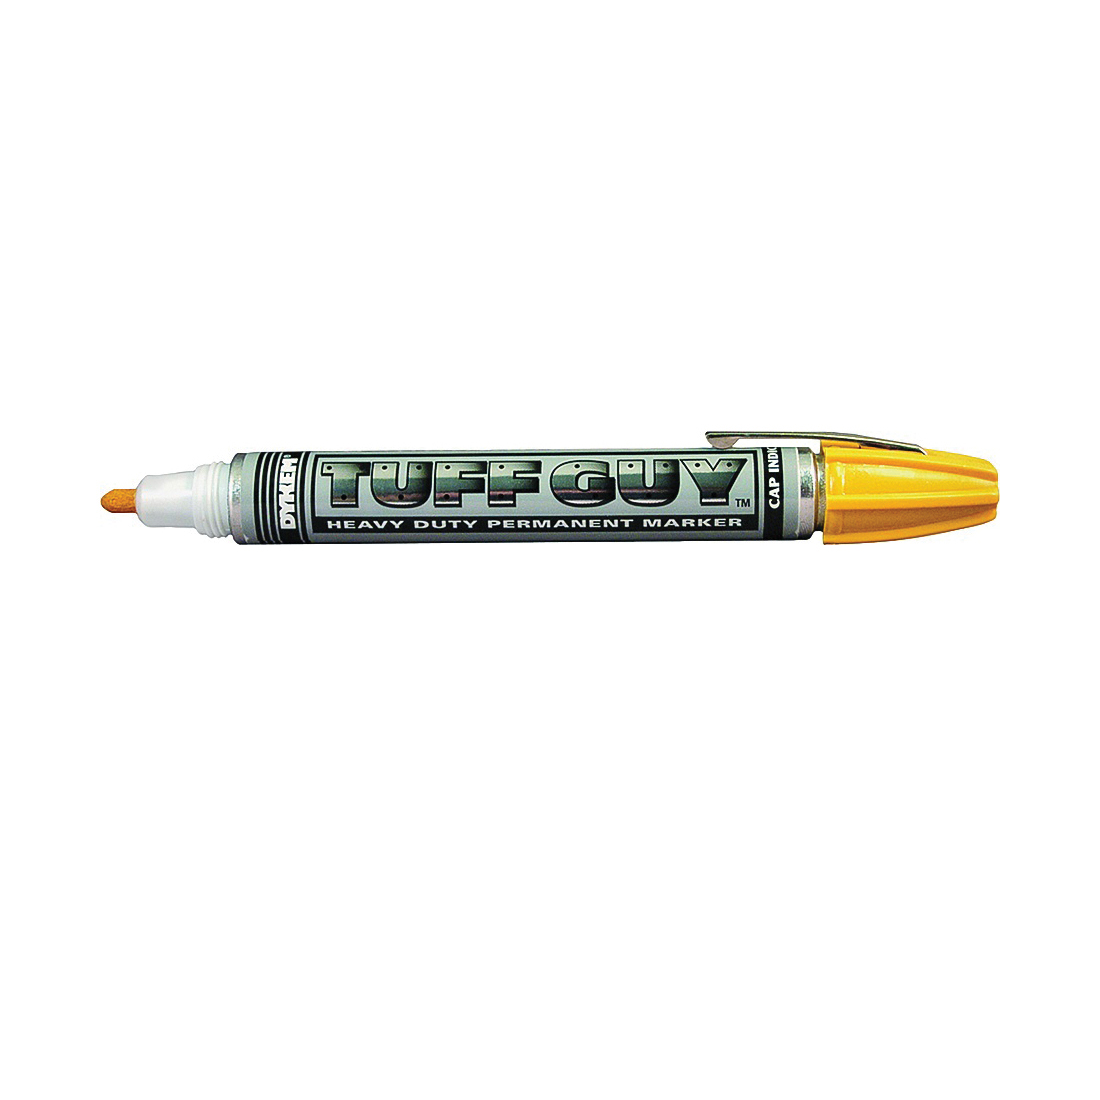 Picture of Dykem 44401 Permanent Marker, Yellow